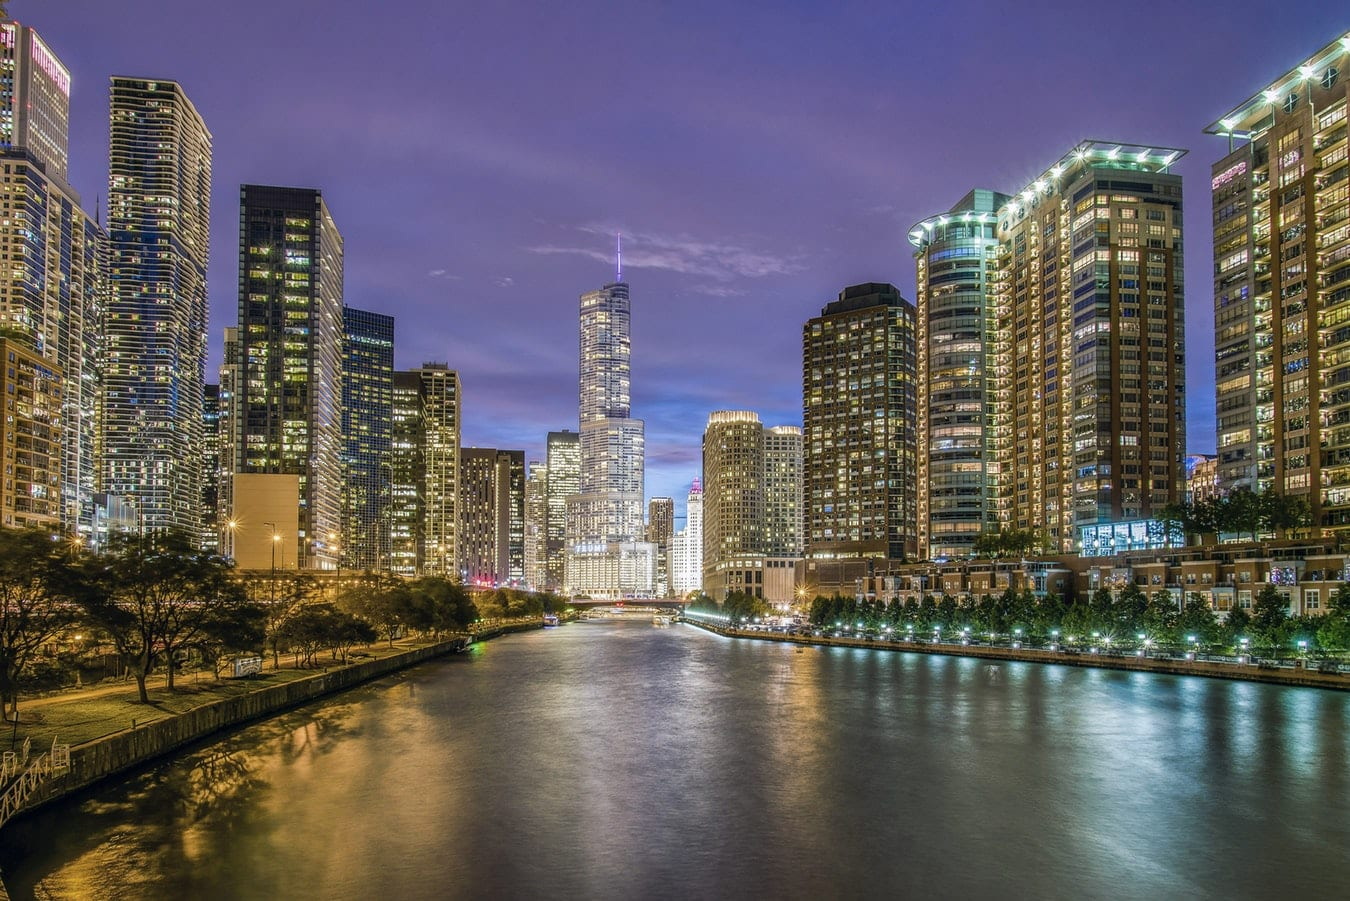 The Chicago Riverfront. Photo by Pedro Lastra on Unsplash